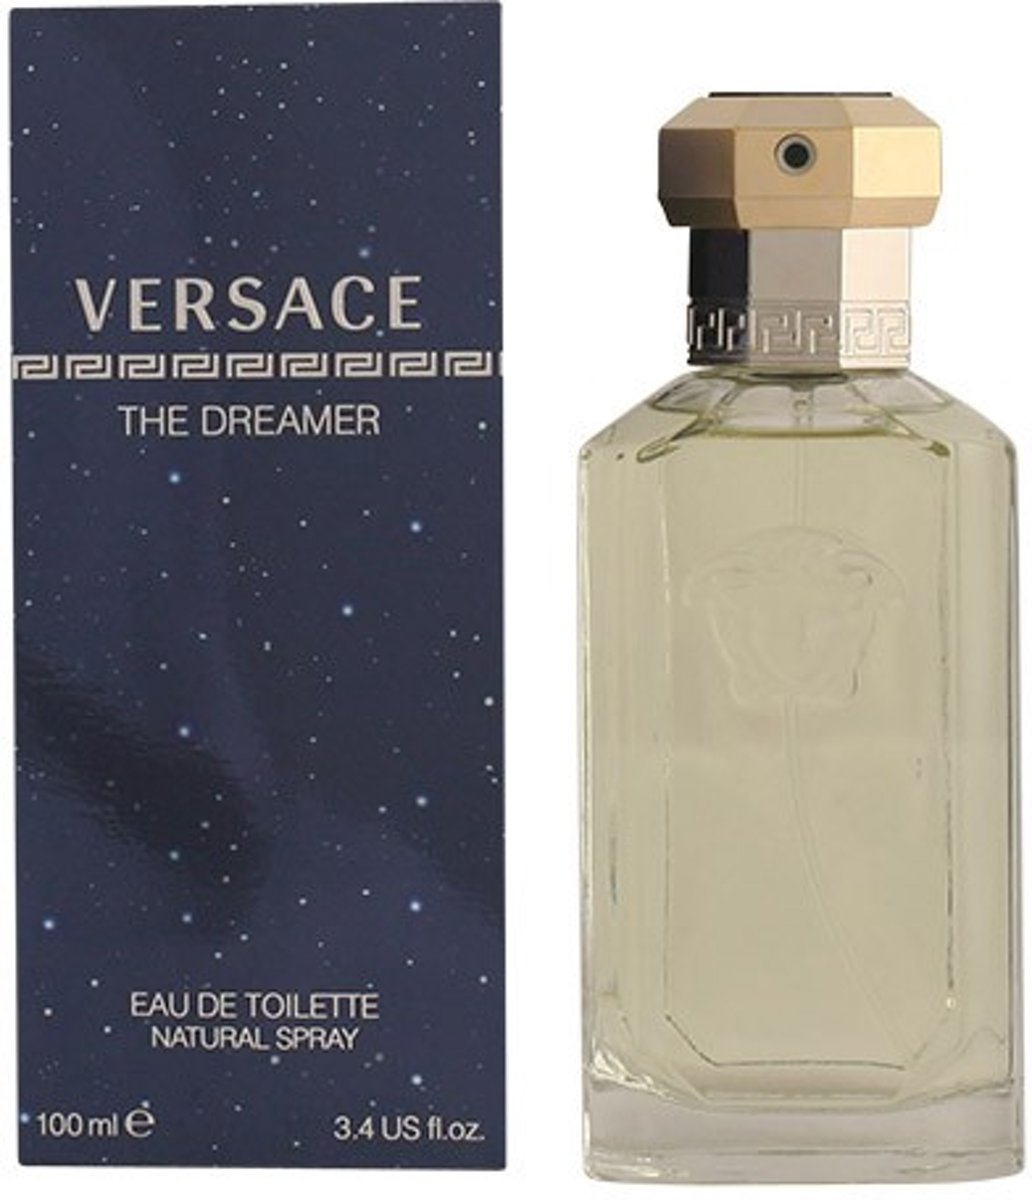 MULTI BUNDEL 2 stuks THE DREAMER eau de toilette spray 100 ml